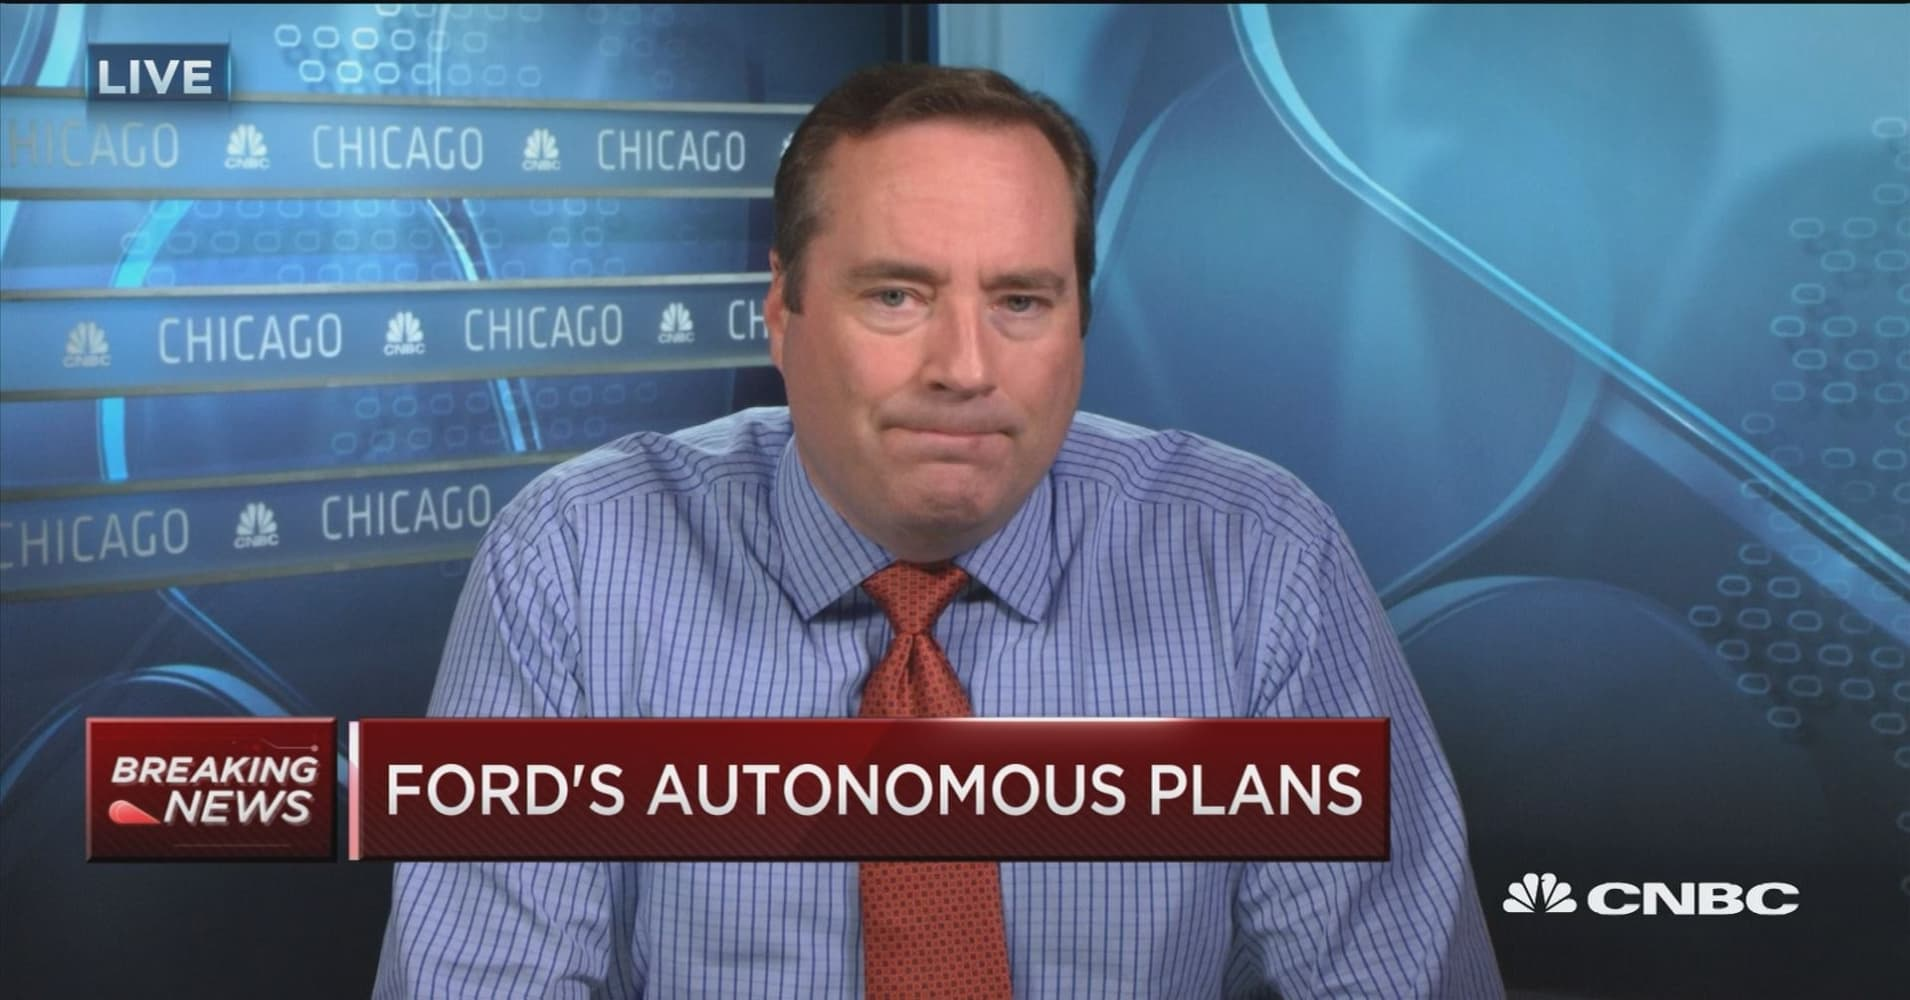 Ford's self-driving car plans on